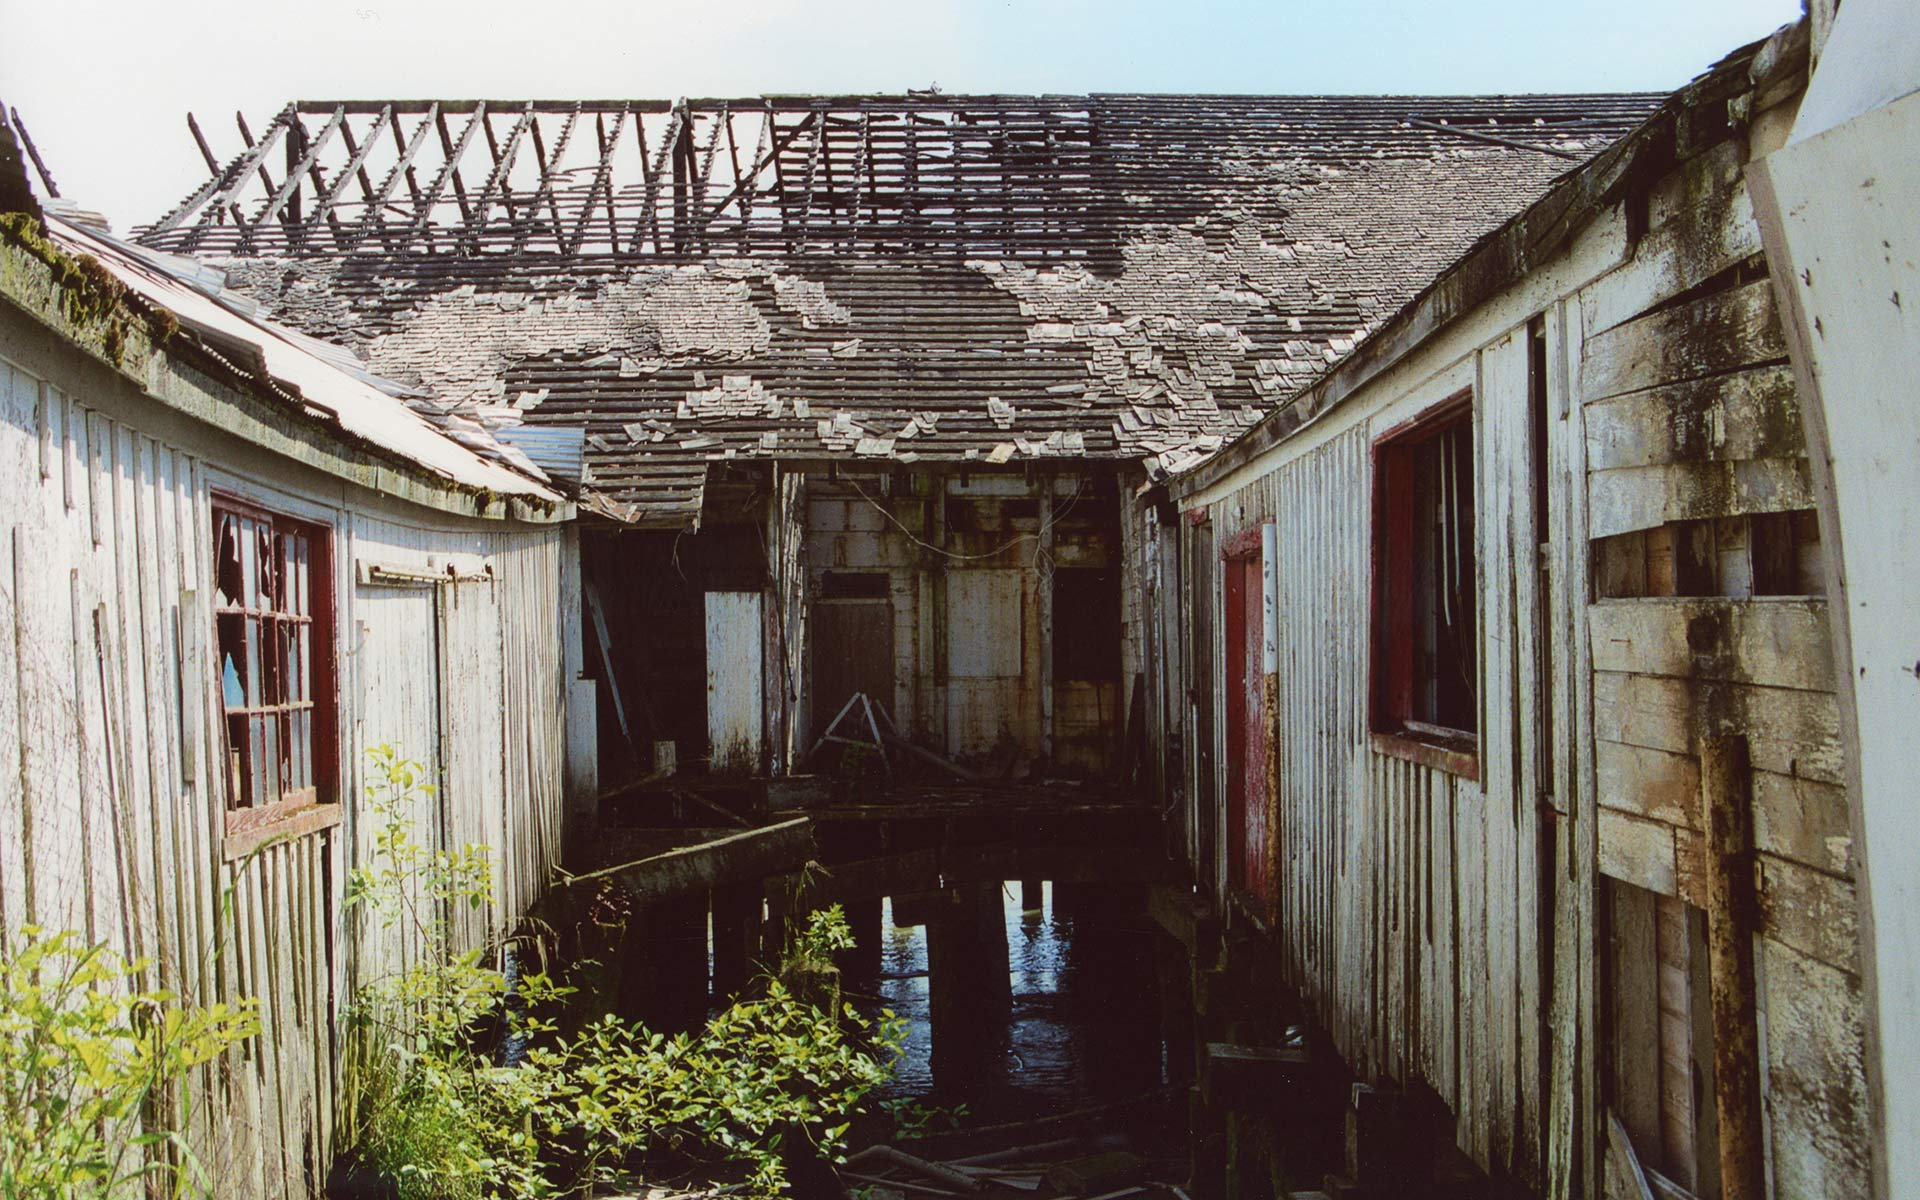 Cannery buildings in disrepair with planks of wood in the water, and broken windows.